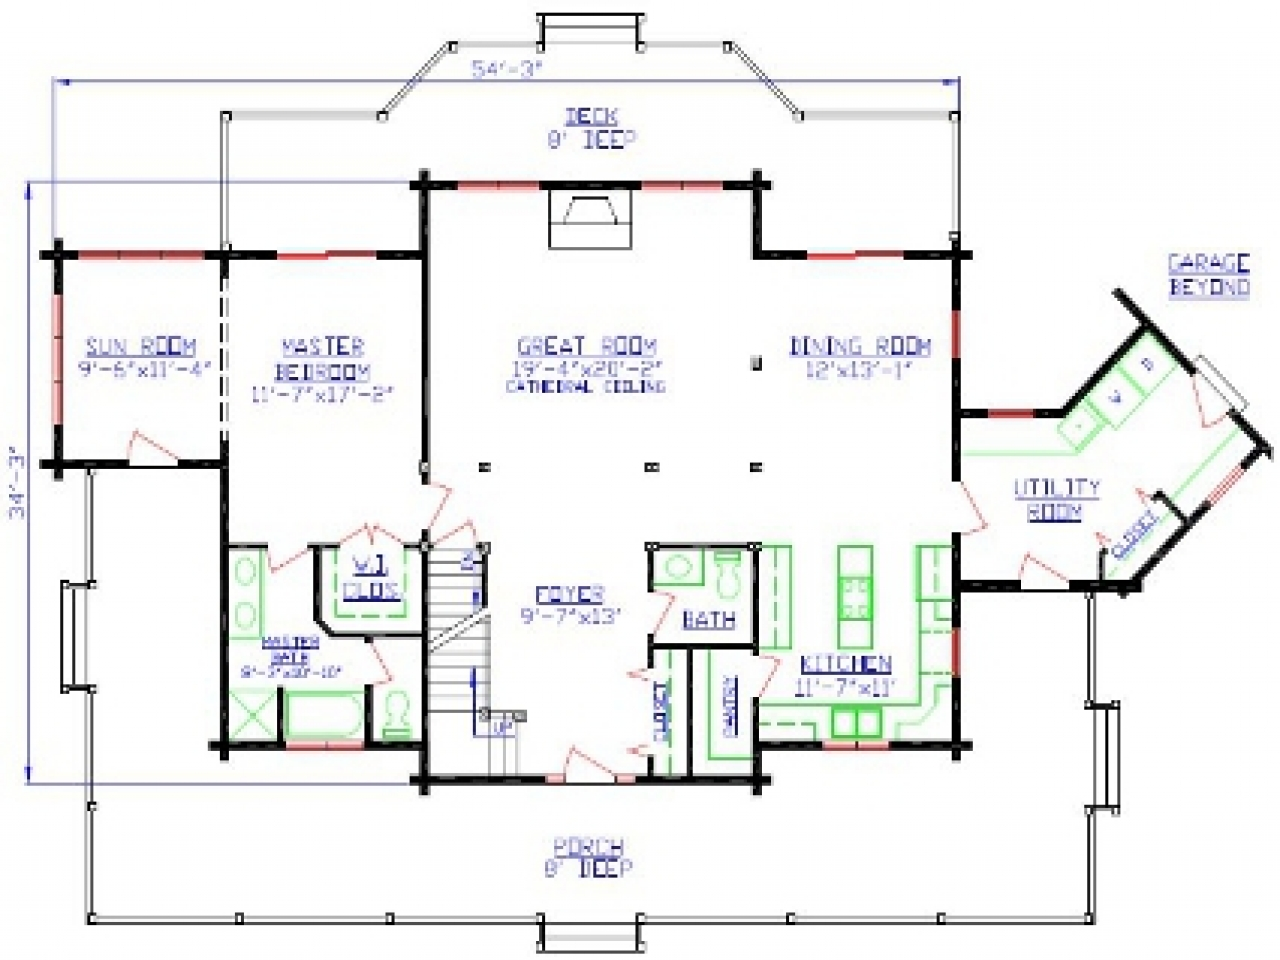 Free printable house floor plans free printable house - Design a building online free ...